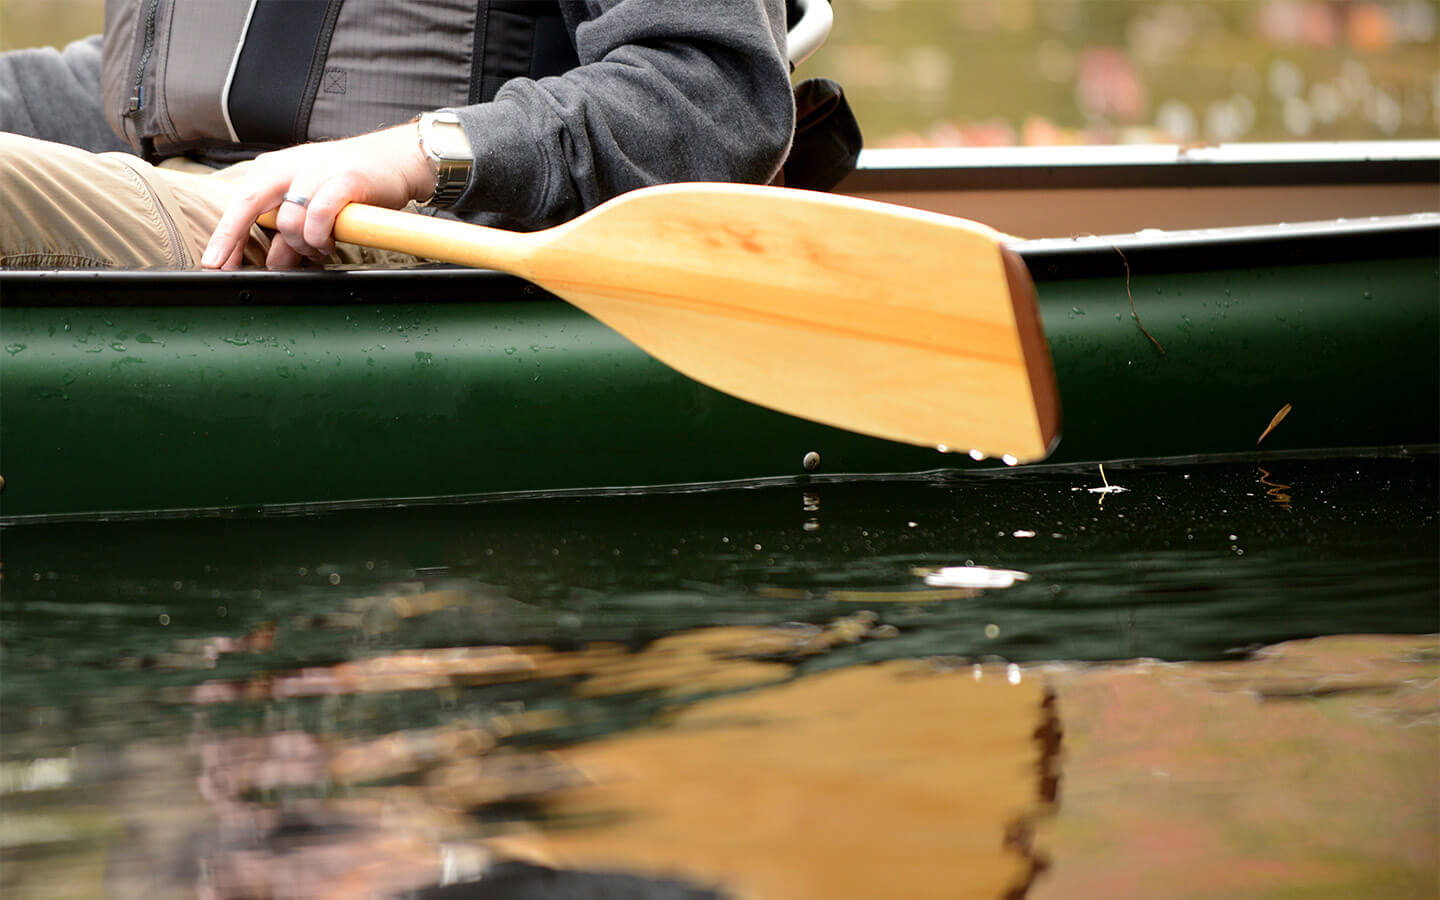 Canoe with oar about to dip into the water